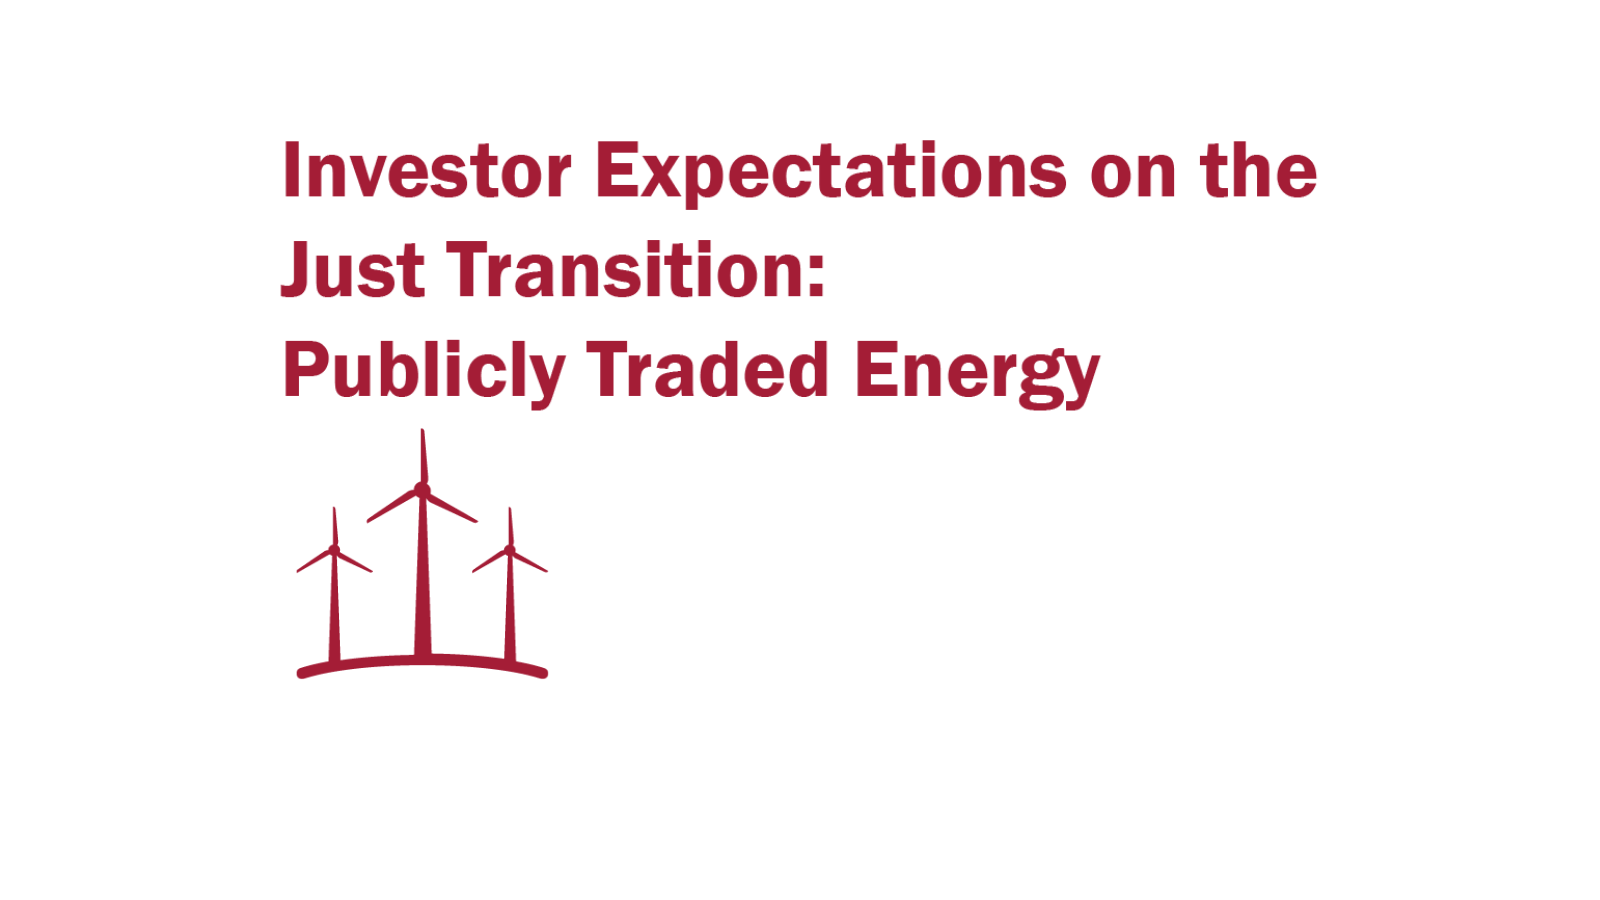 Investor Expectations on the Just Transition: Publicly Traded Energy